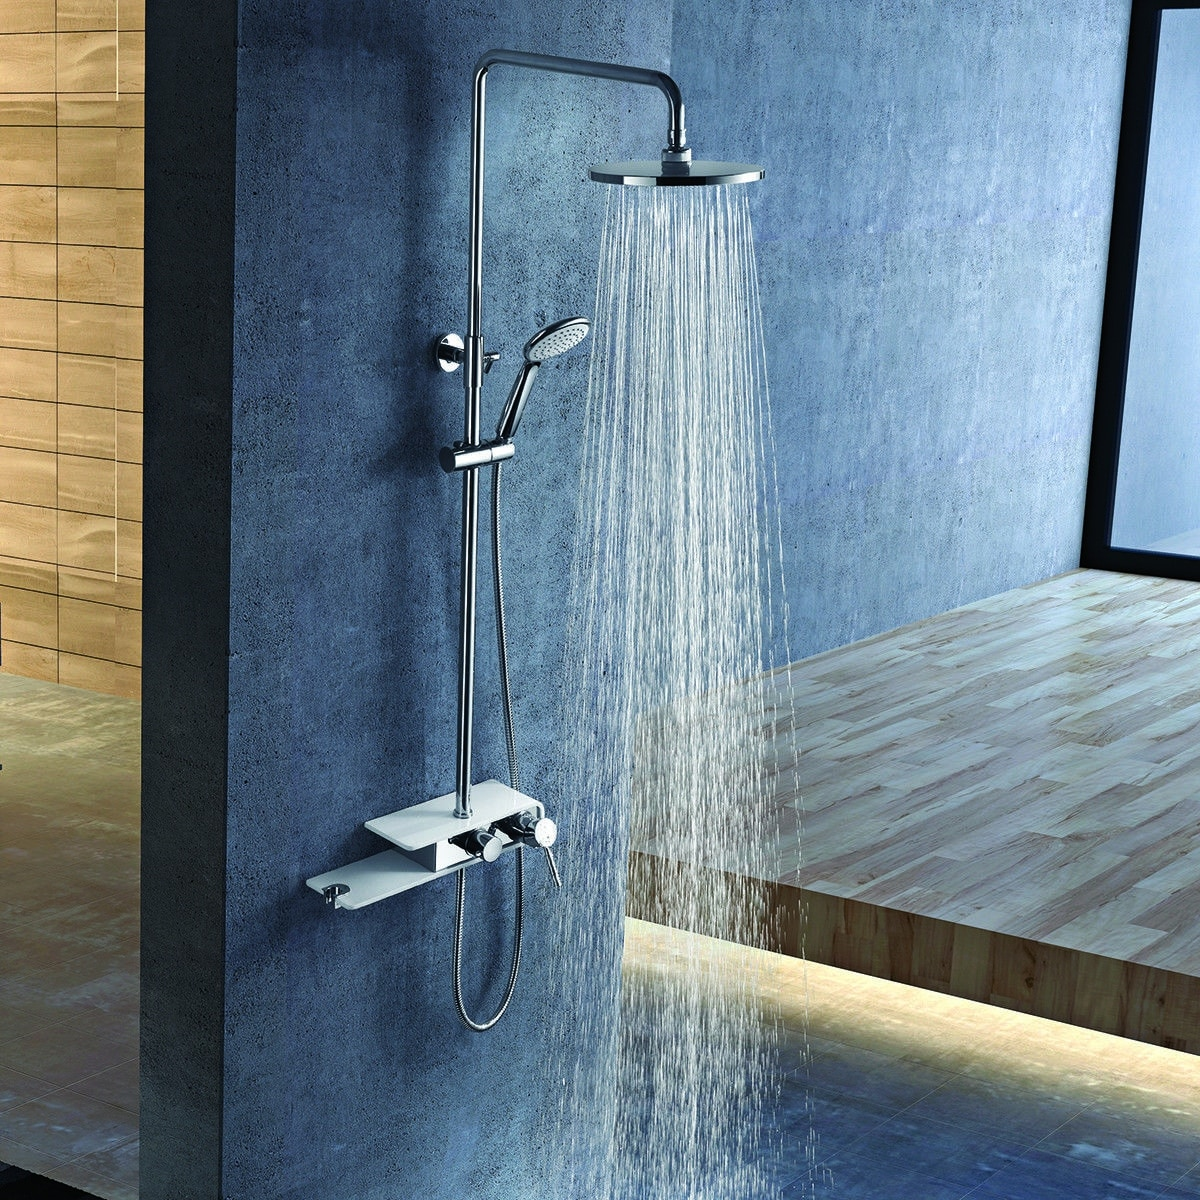 Showers | Shop our Best Home Improvement Deals Online at Overstock.com